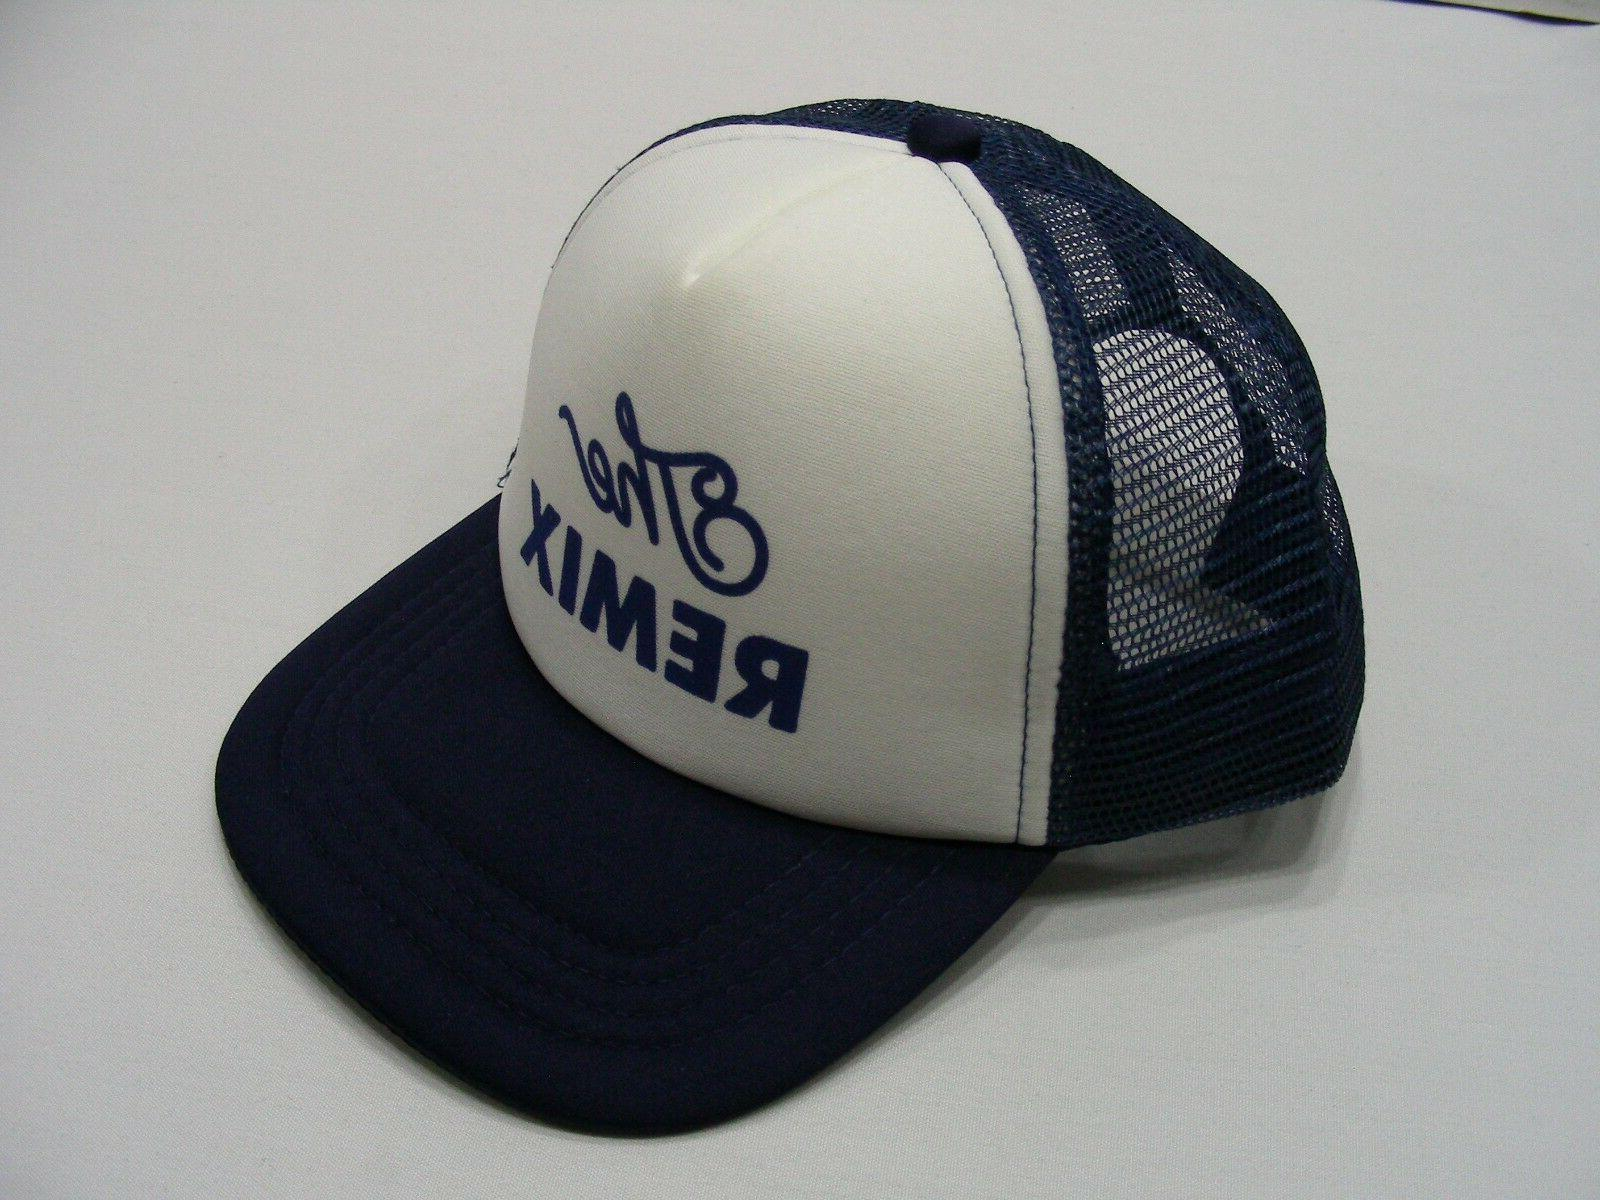 THE REMIX SIZE 4-6x CAP